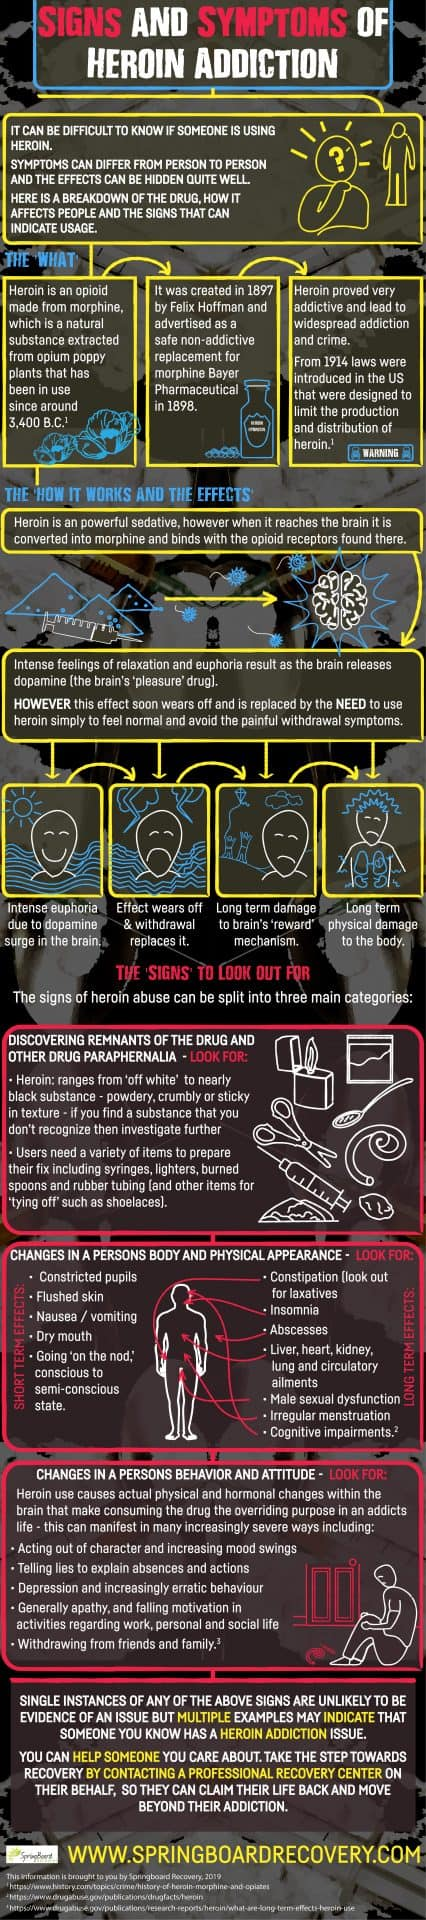 Signs and Symptoms of Heroin Addiction